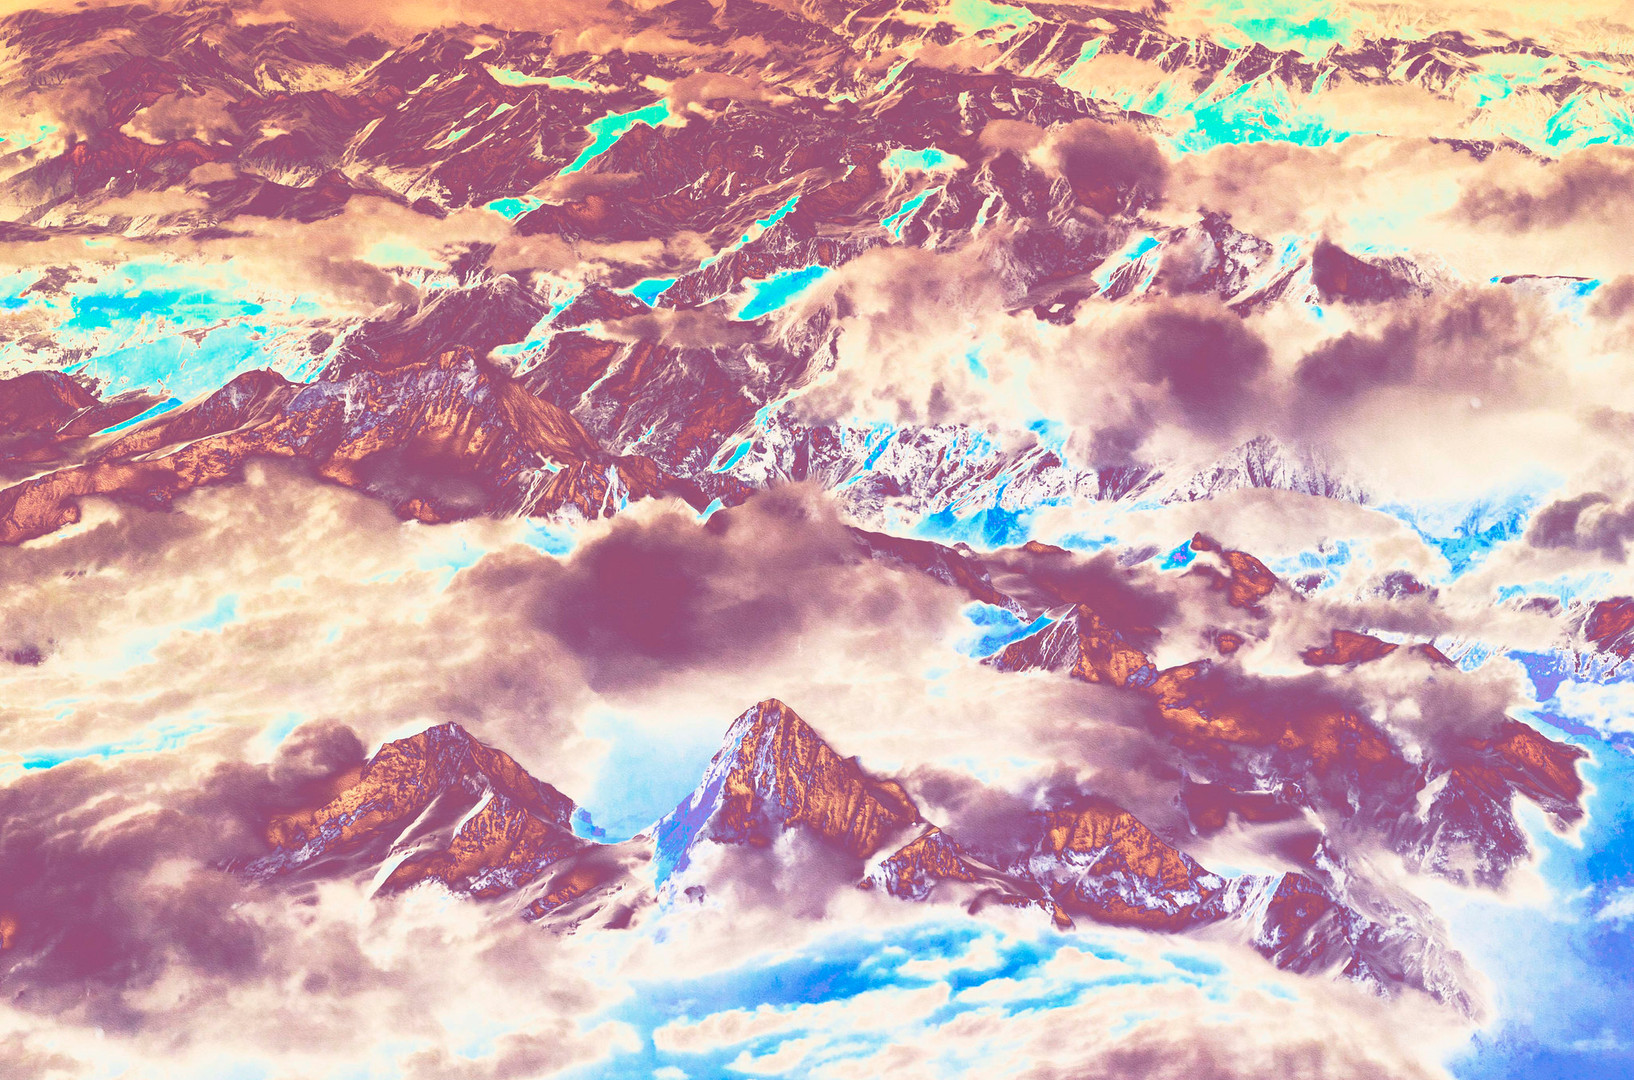 Polluted Mountains IV